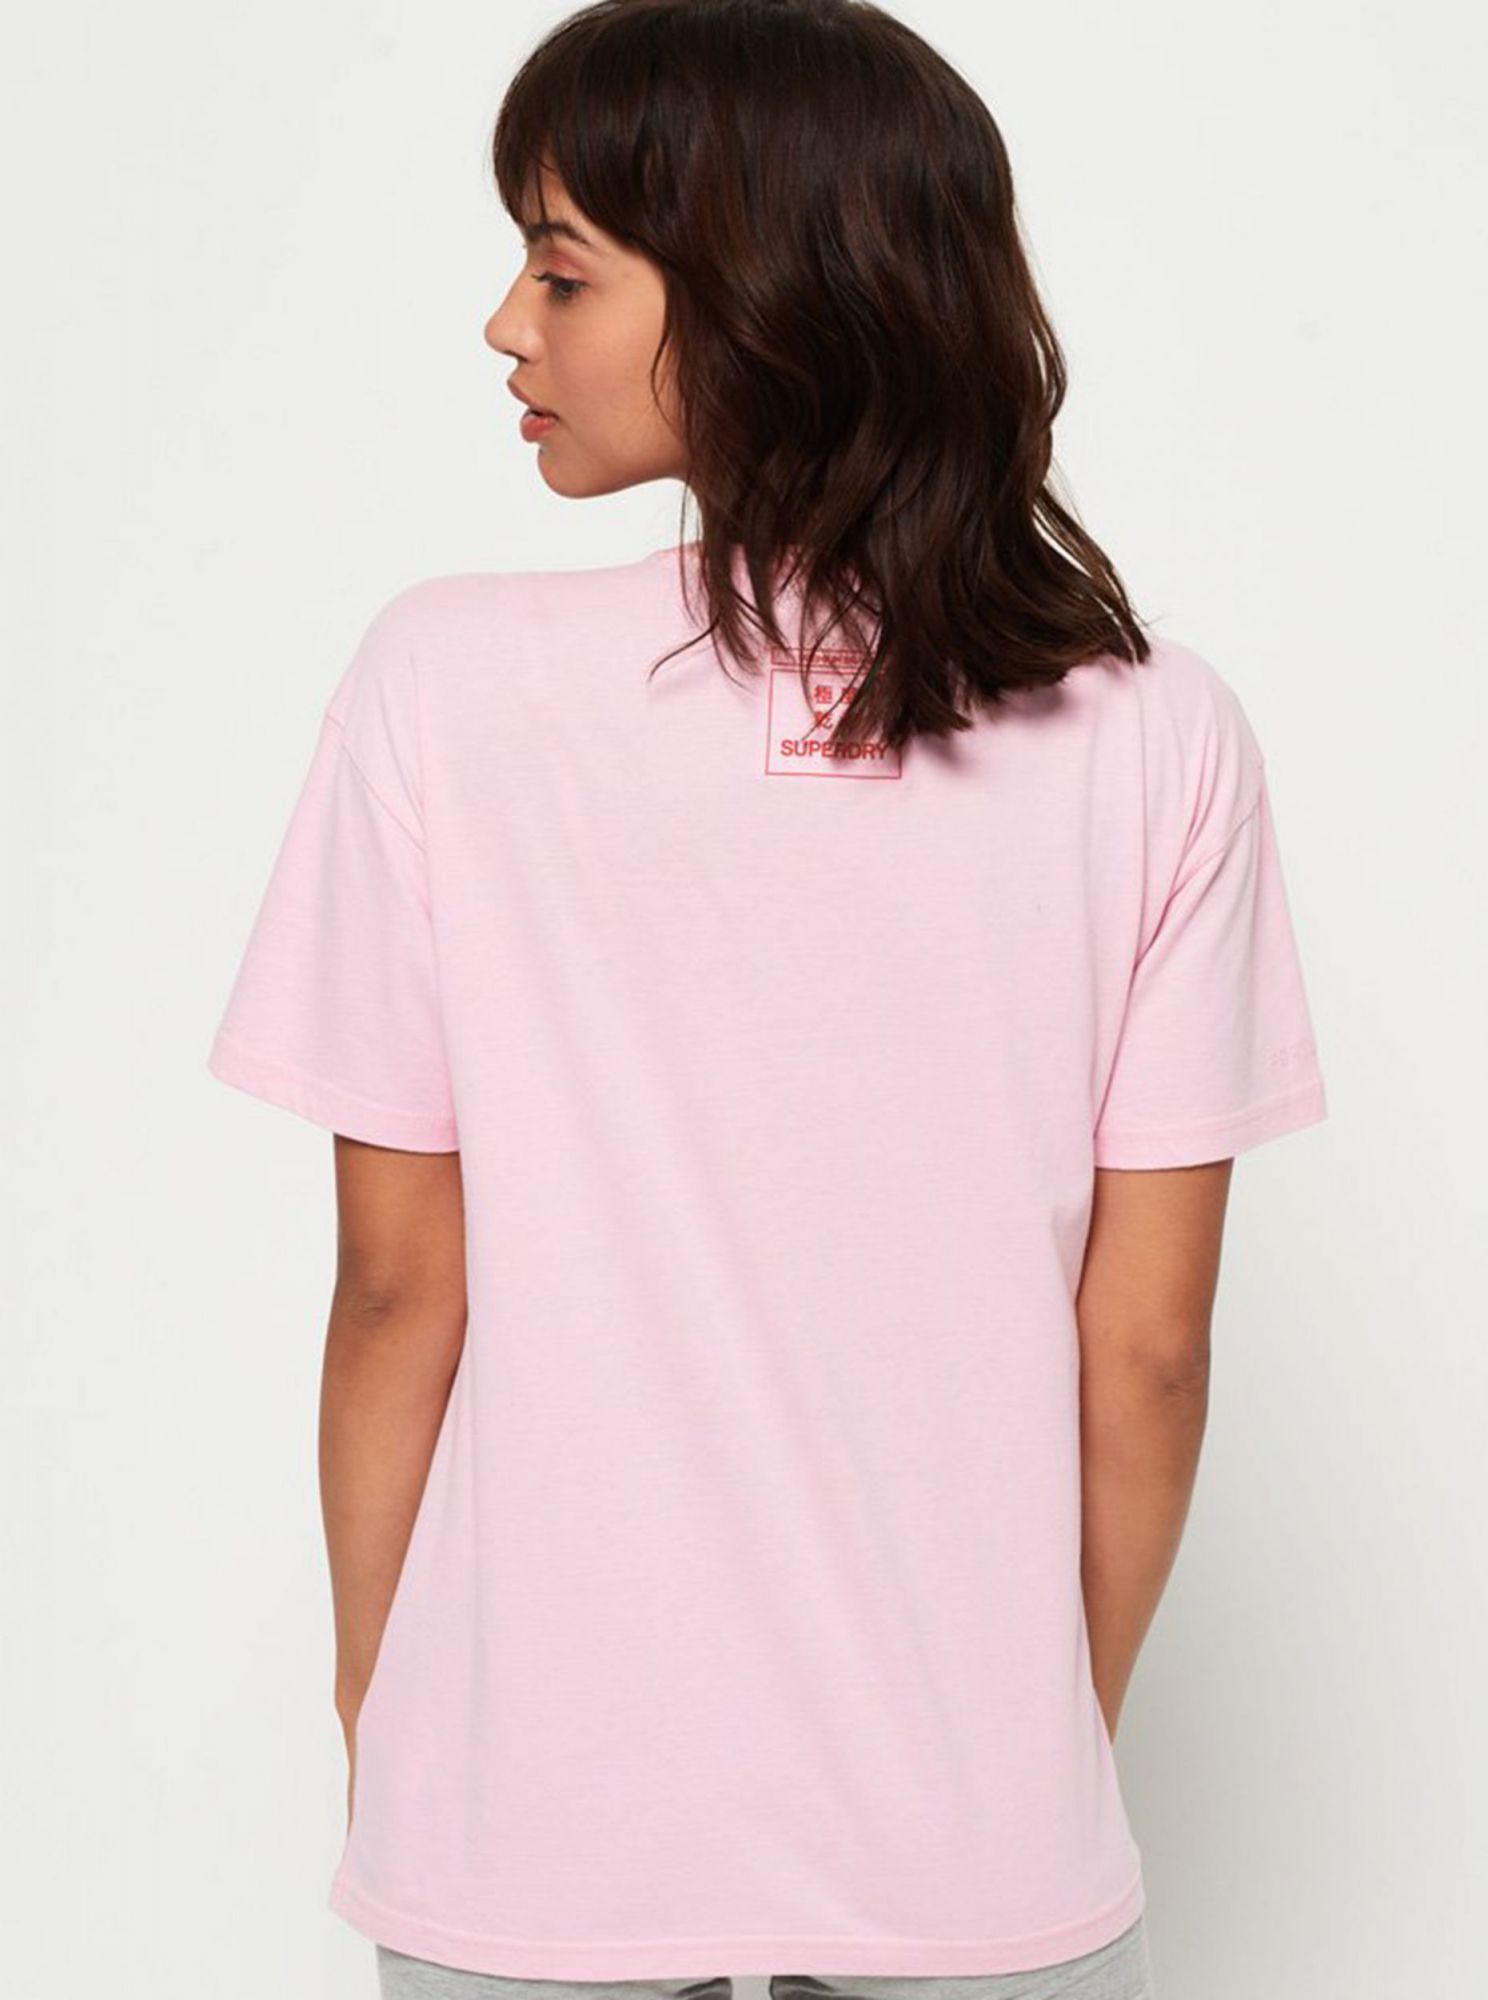 Pink women's t-shirt with Superdry print